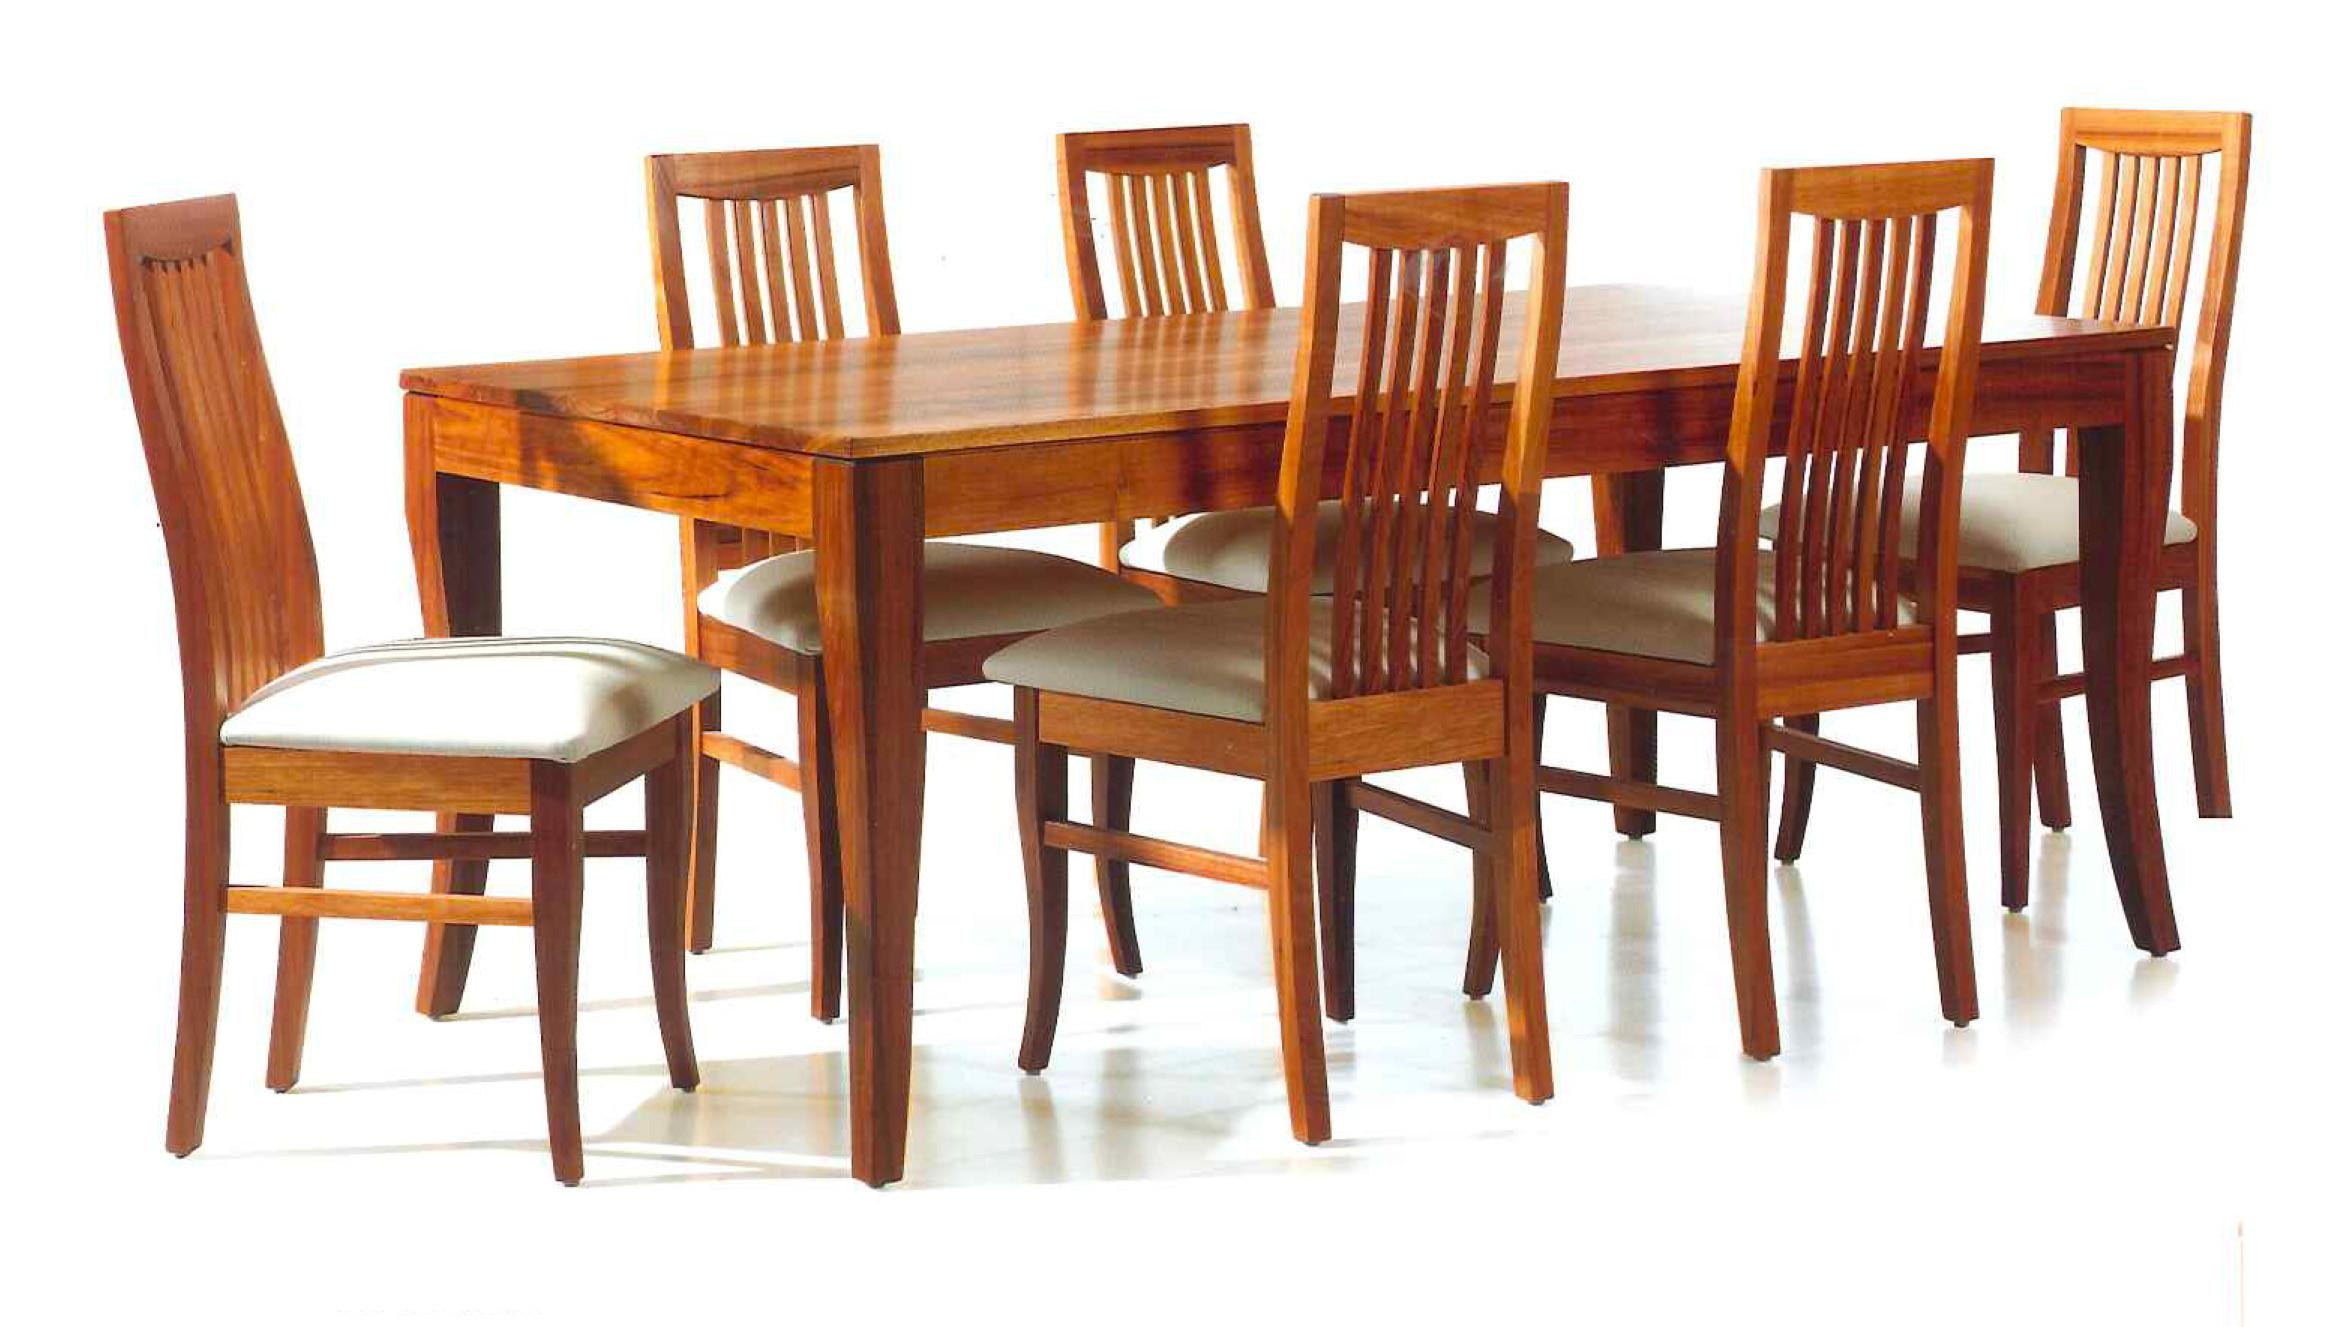 Dining Room Furniture Wooden Tables Chairs Designs